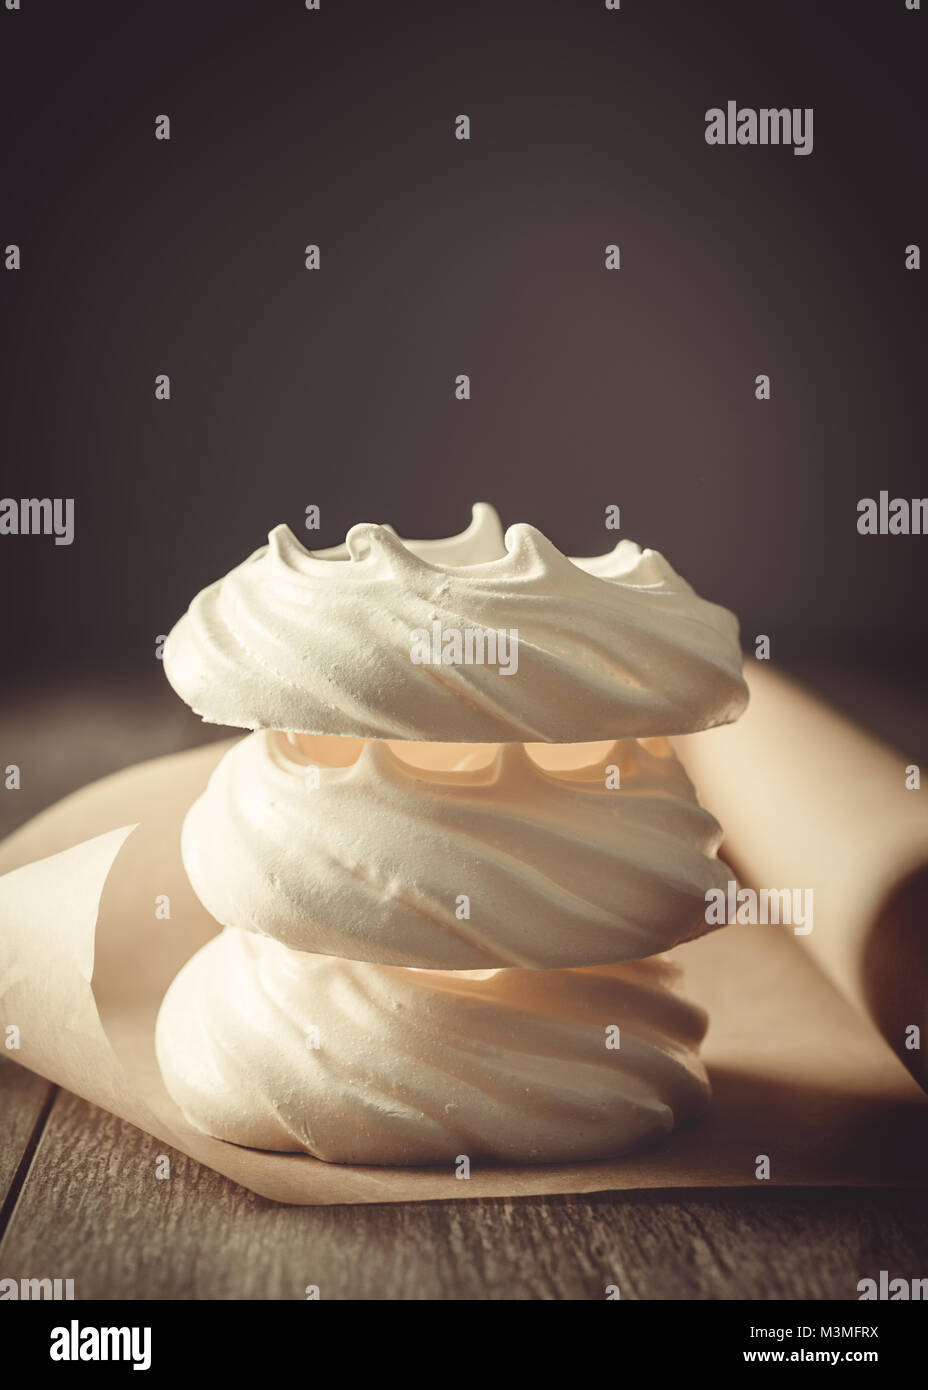 Stack of three meringue nests on parchment roll on table - Stock Image